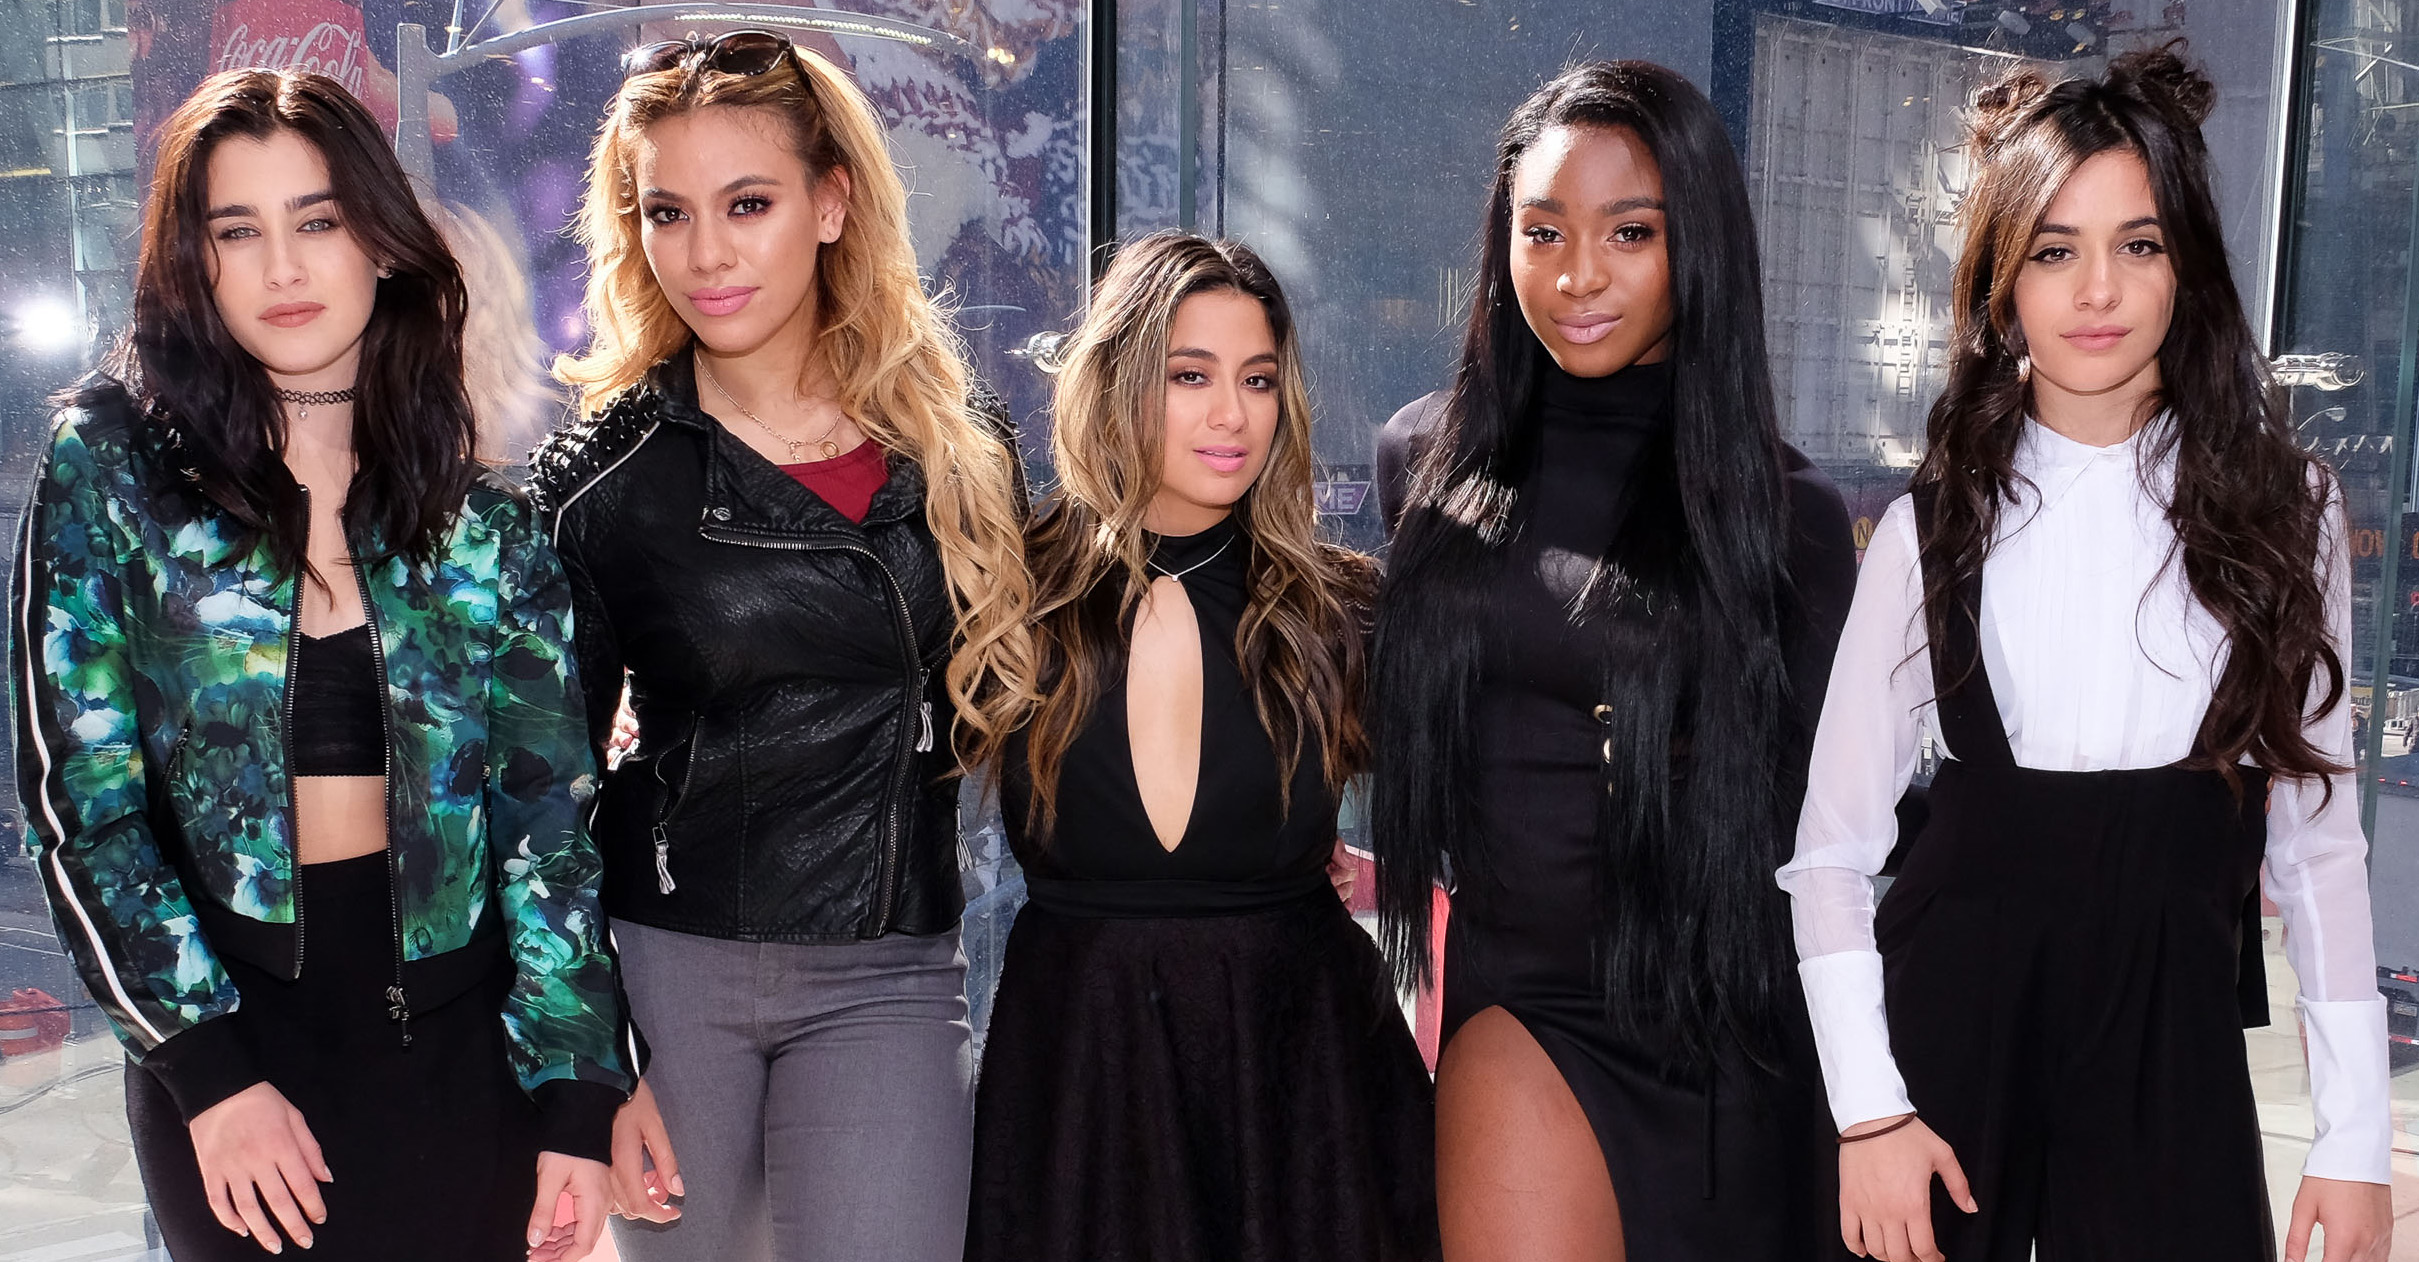 While the members of Fifth Harmony work well together, they've become more successful in their individual careers. (Photo by D Dipasupil/Getty Images for Extra)